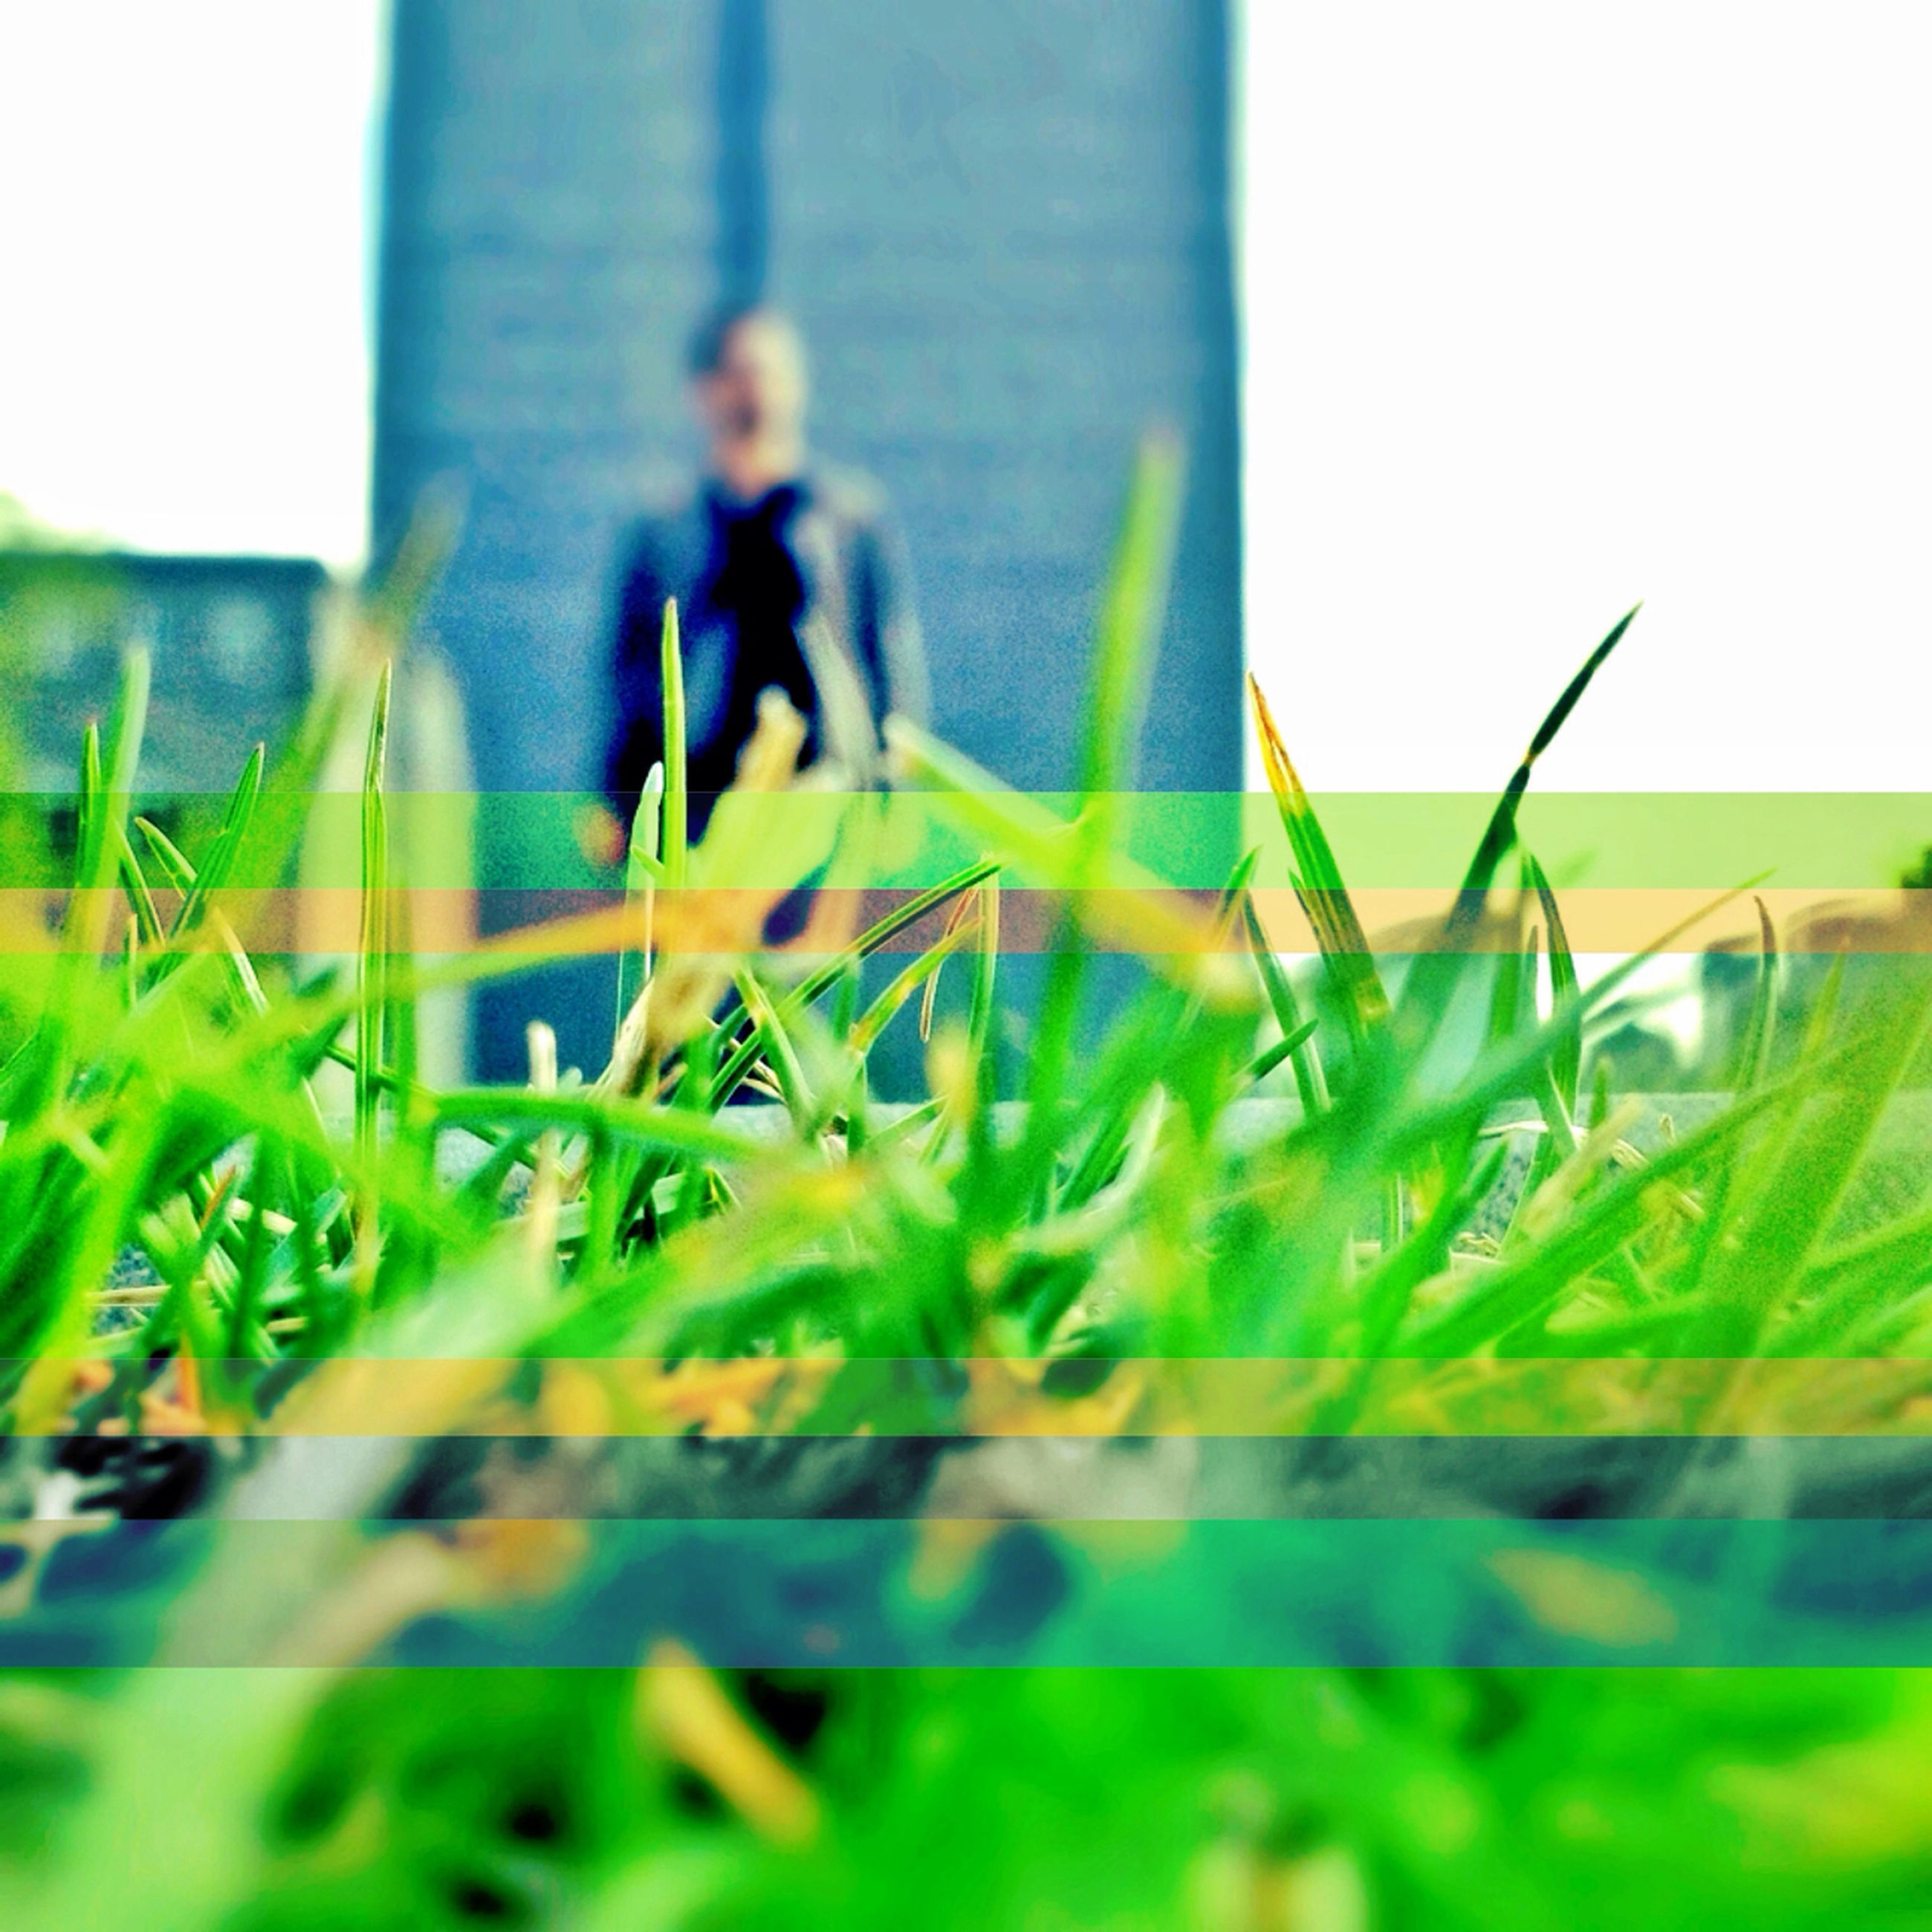 grass, green color, selective focus, focus on foreground, plant, growth, field, surface level, focus on background, nature, close-up, day, clear sky, green, outdoors, building exterior, grassy, incidental people, built structure